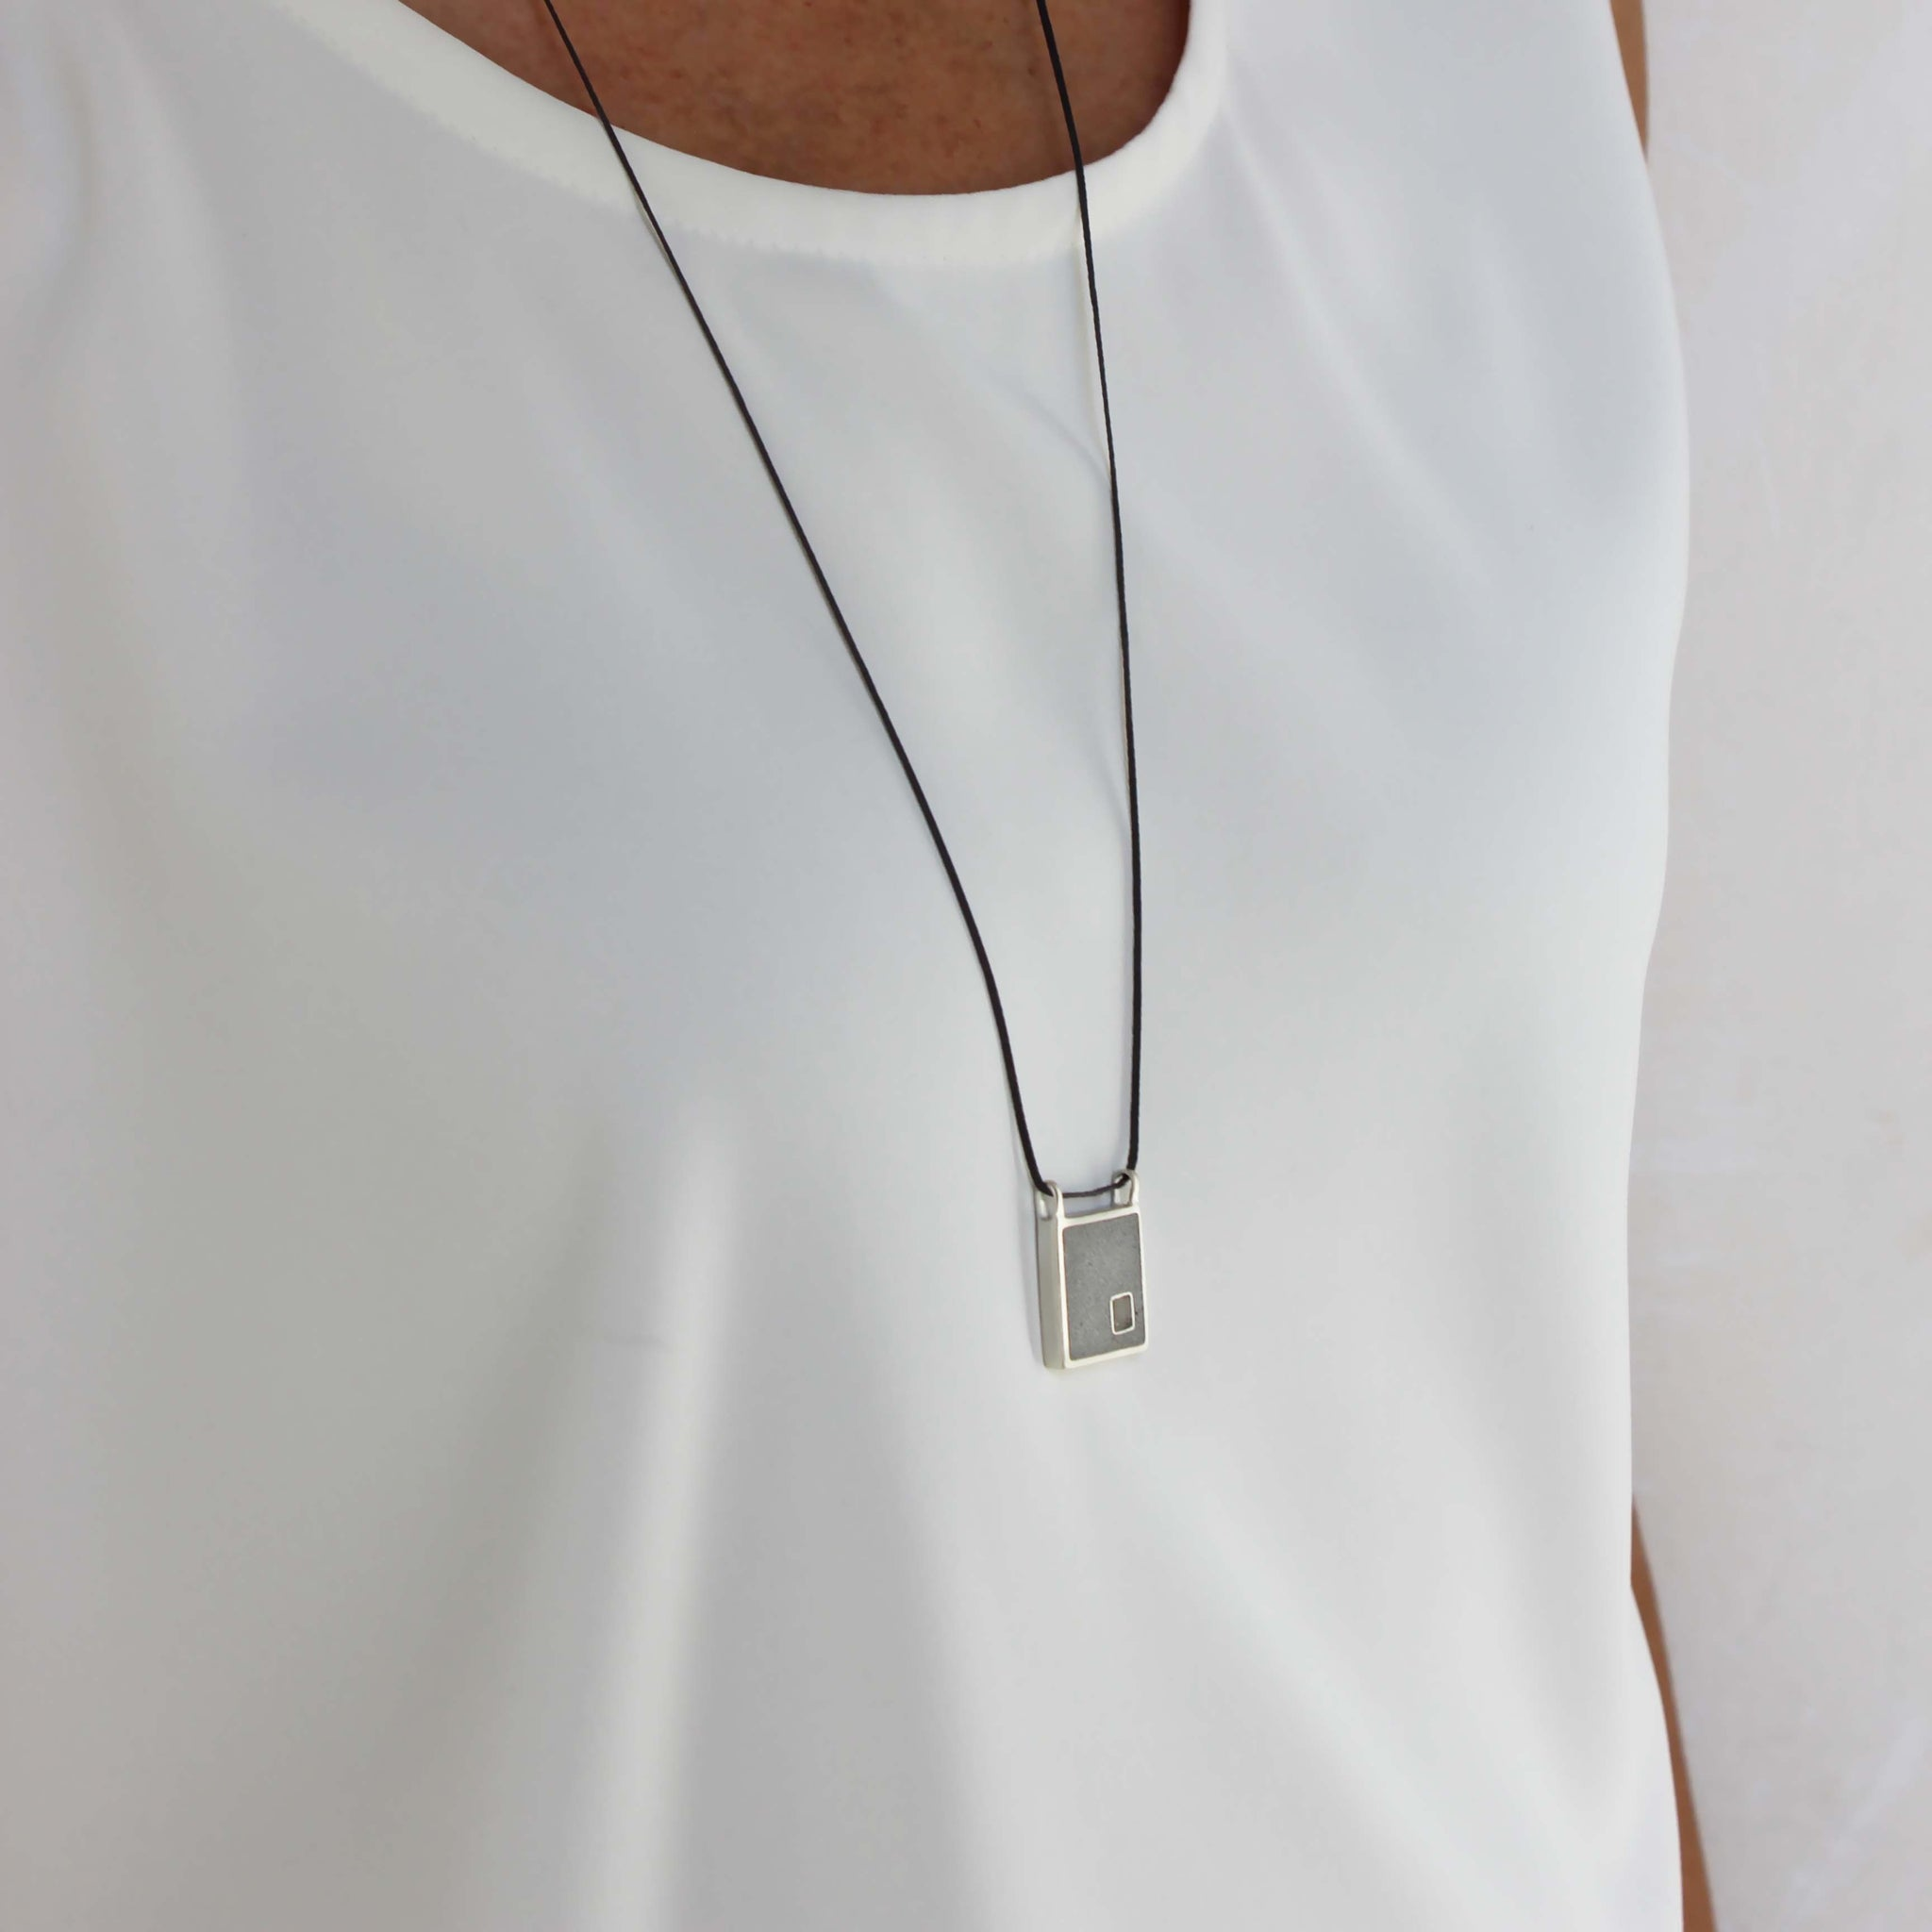 Unixes necklace, silver and concrete pendant, square pendant, BAARA Jewelry